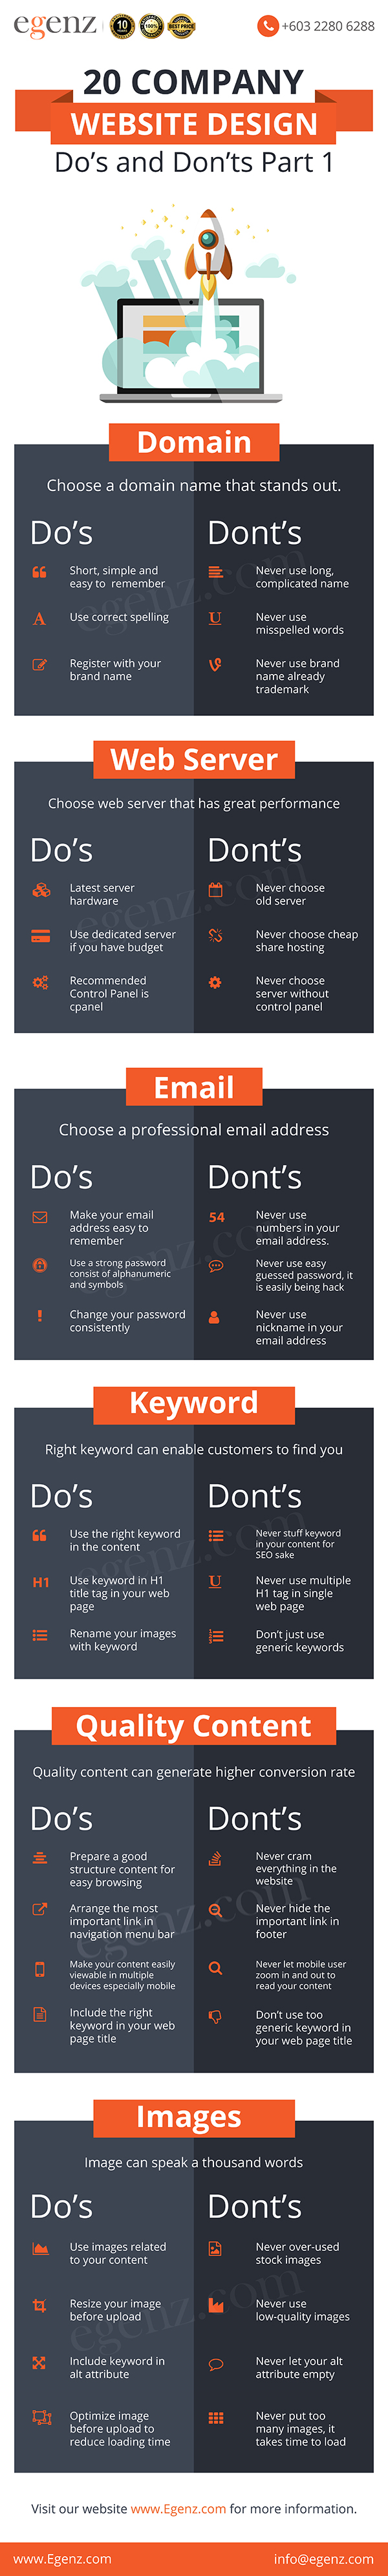 Infographic-20-Company-Website-Design-Dos-and-Donts